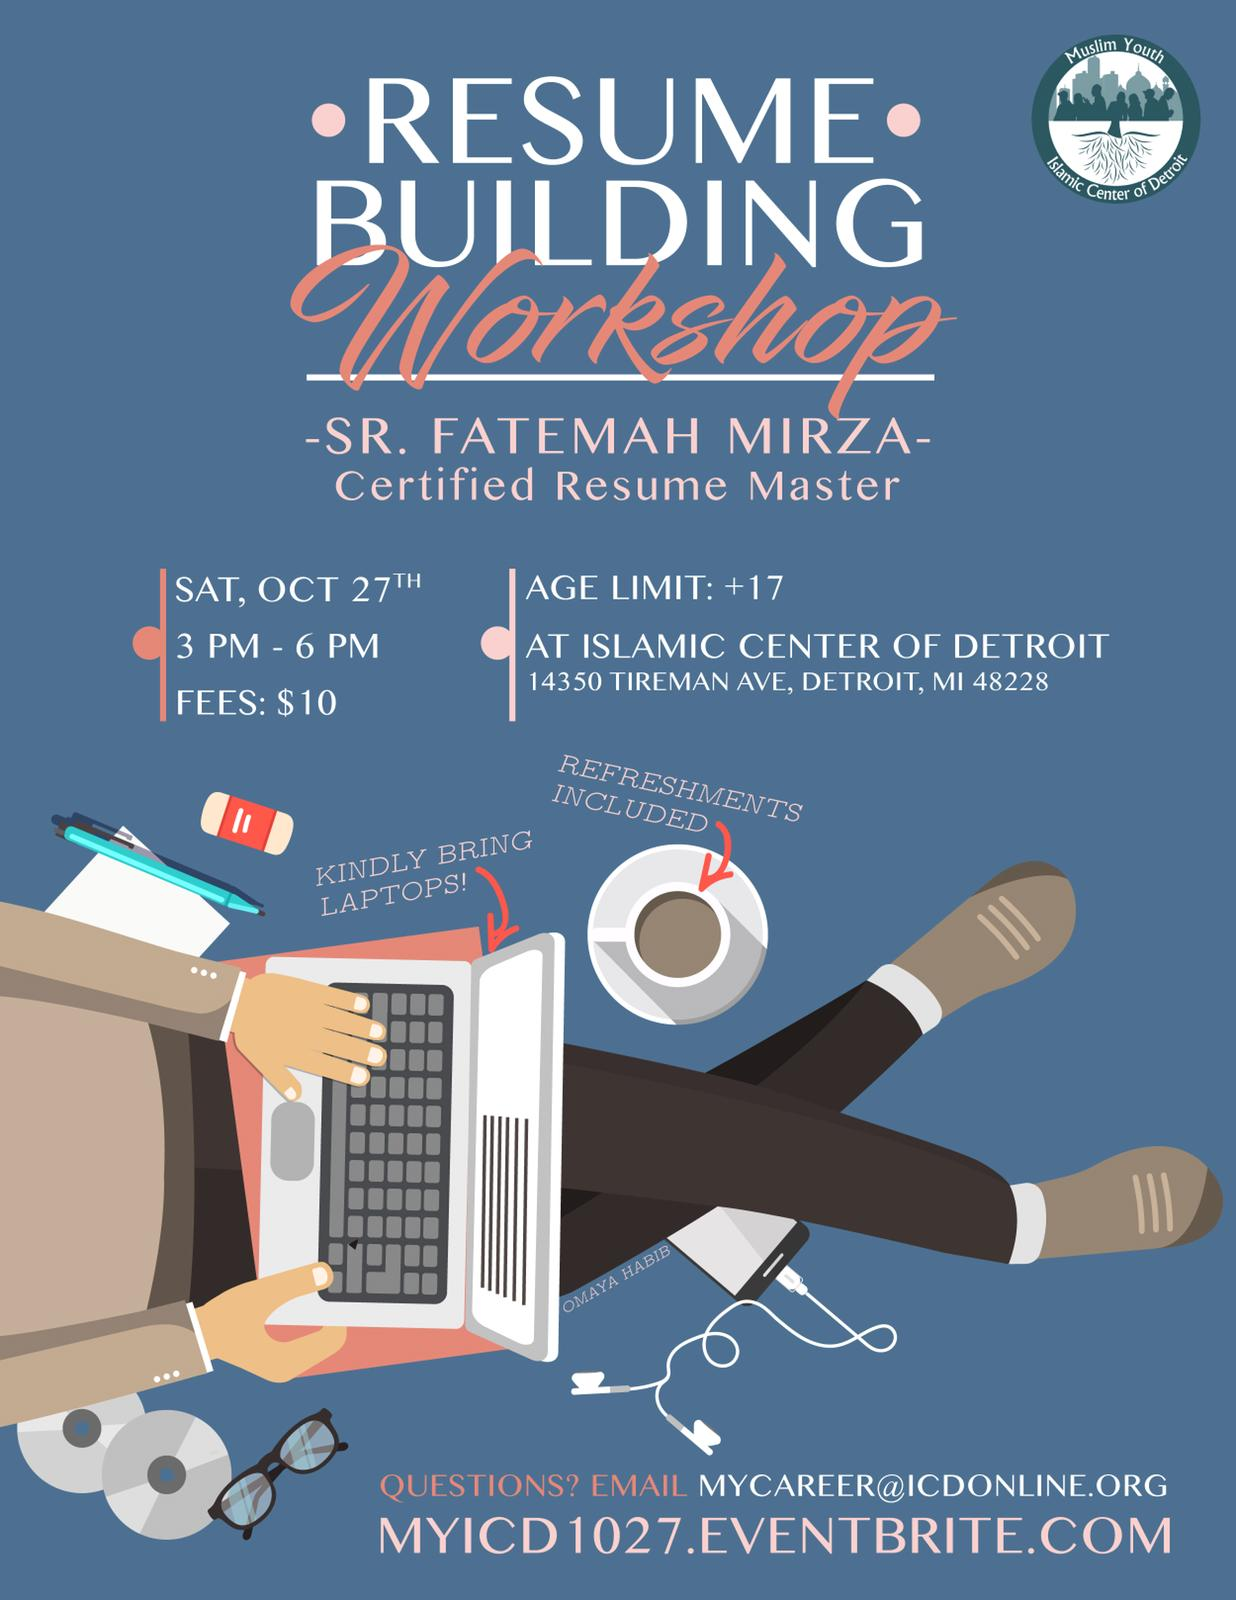 Resume Building Workshop With Certified Resume Master Fatemah